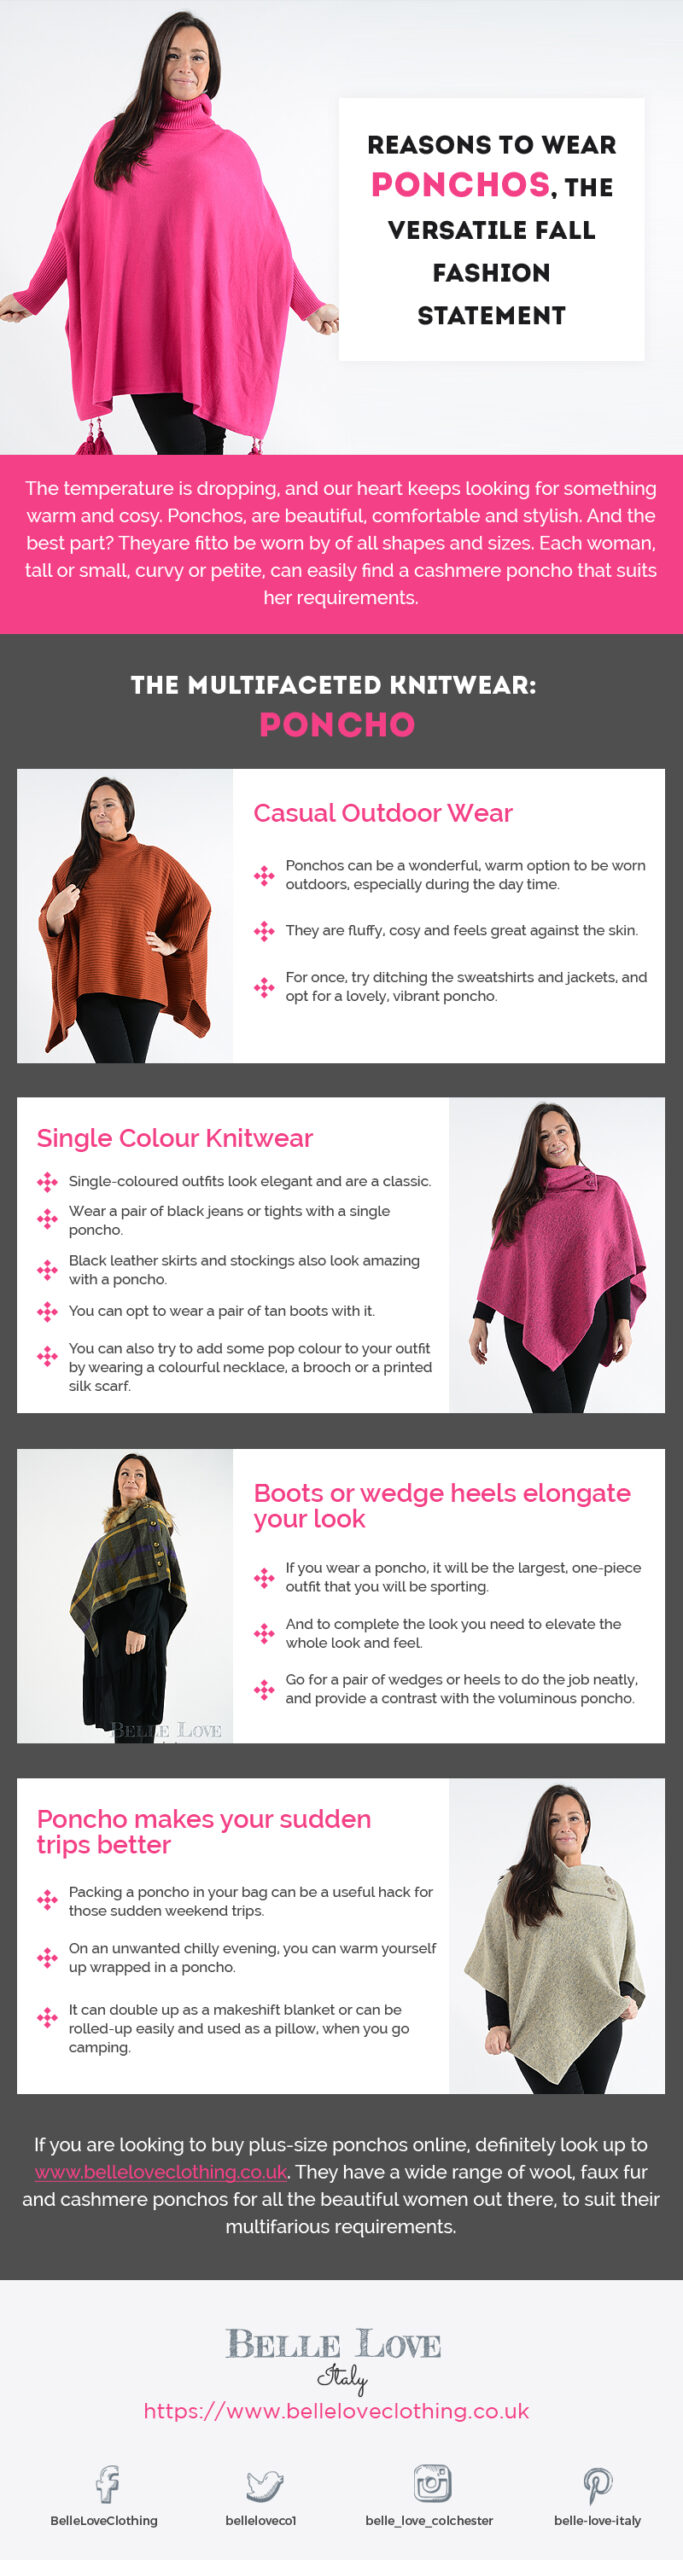 Infographic Reasons To Wear Ponchos